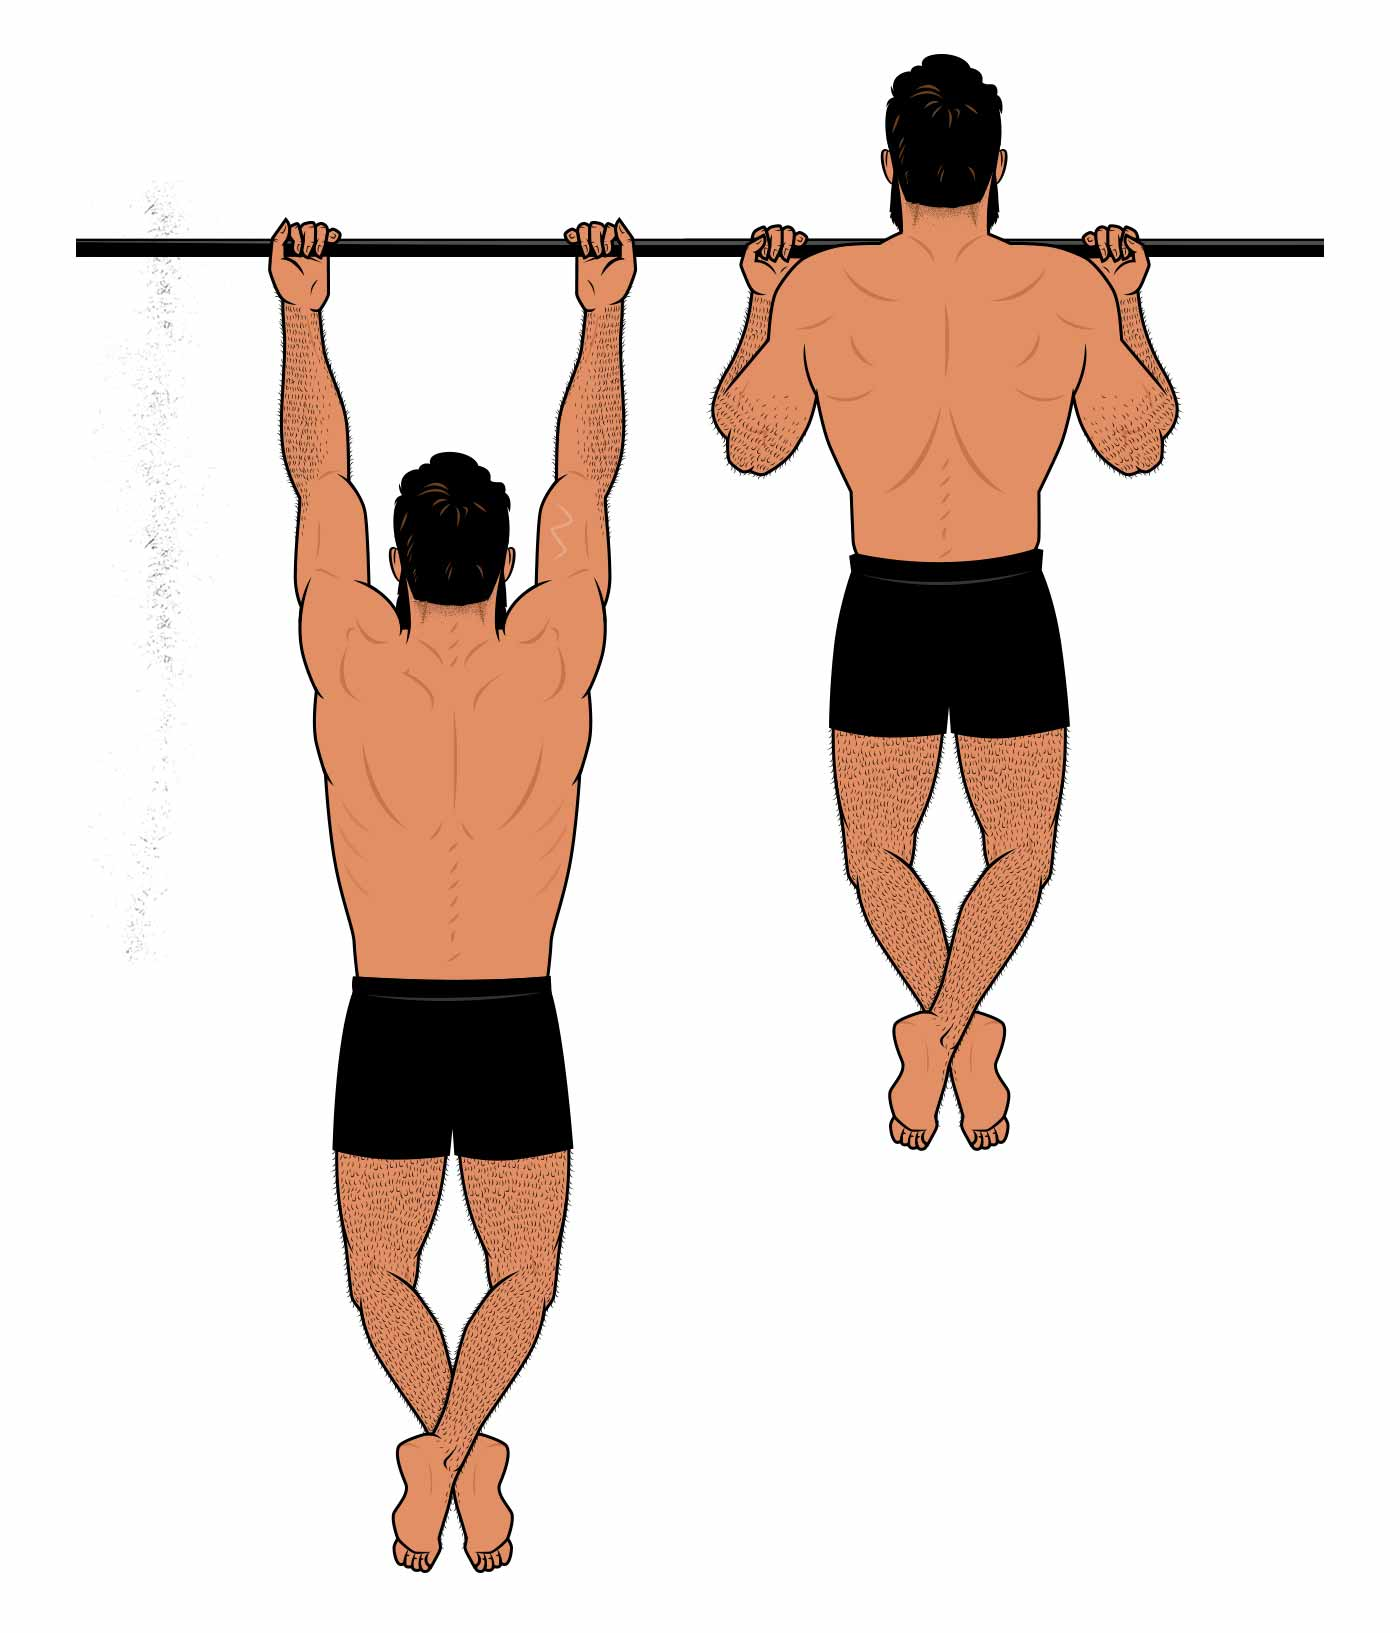 Illustration of a man doing a chin-up.